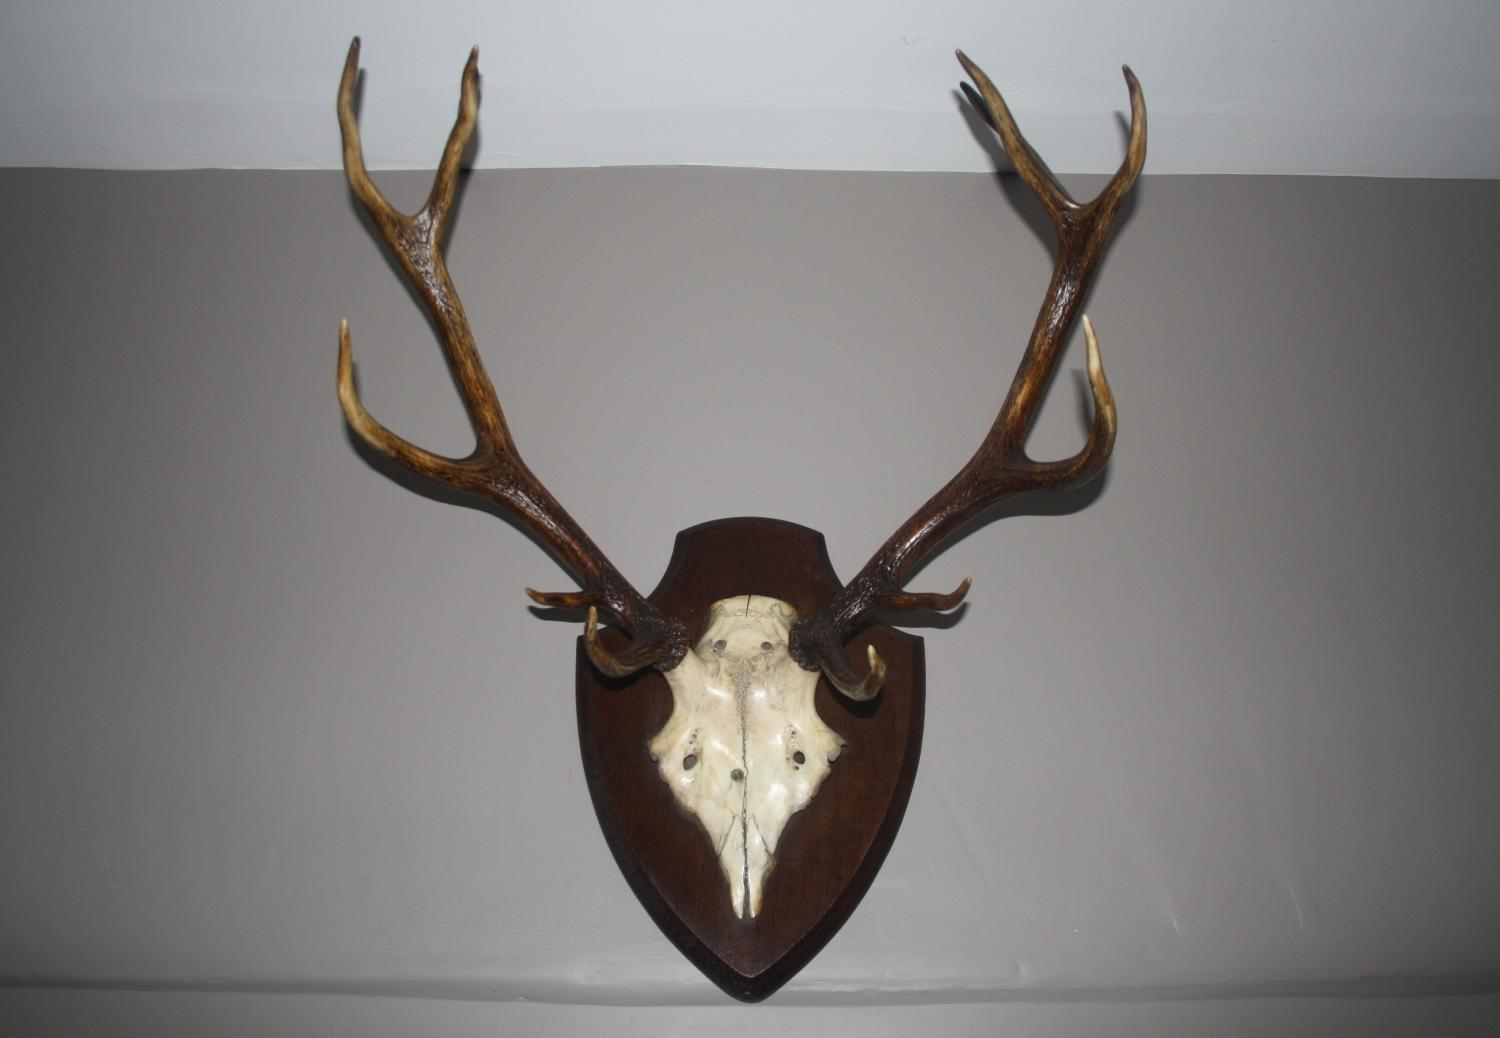 Antlers mounted on wooden shield